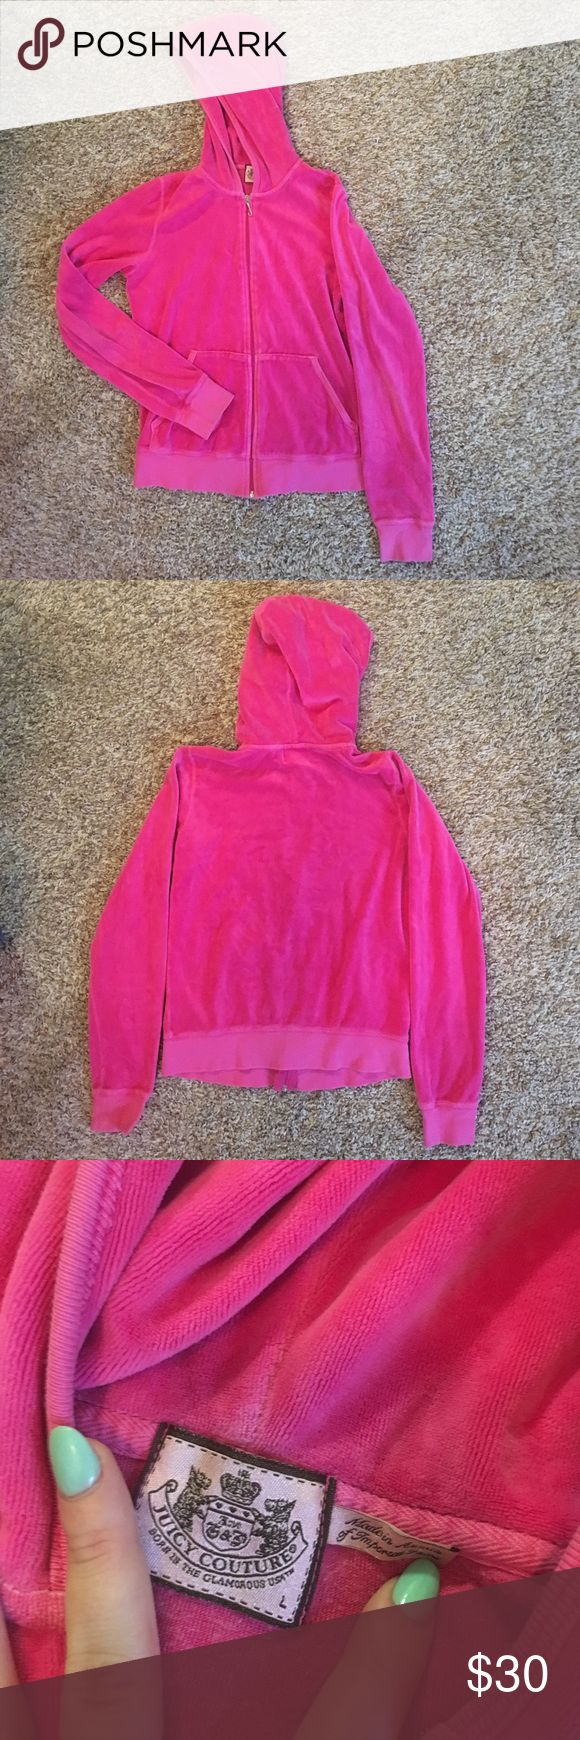 Girls Pink Juicy Couture Velour Jacket Girls Juicy Couture Velour jacket. Girls Large fits women's small! In EUC- no signs of wear.  Taking reasonable offers! Juicy Couture Jackets & Coats